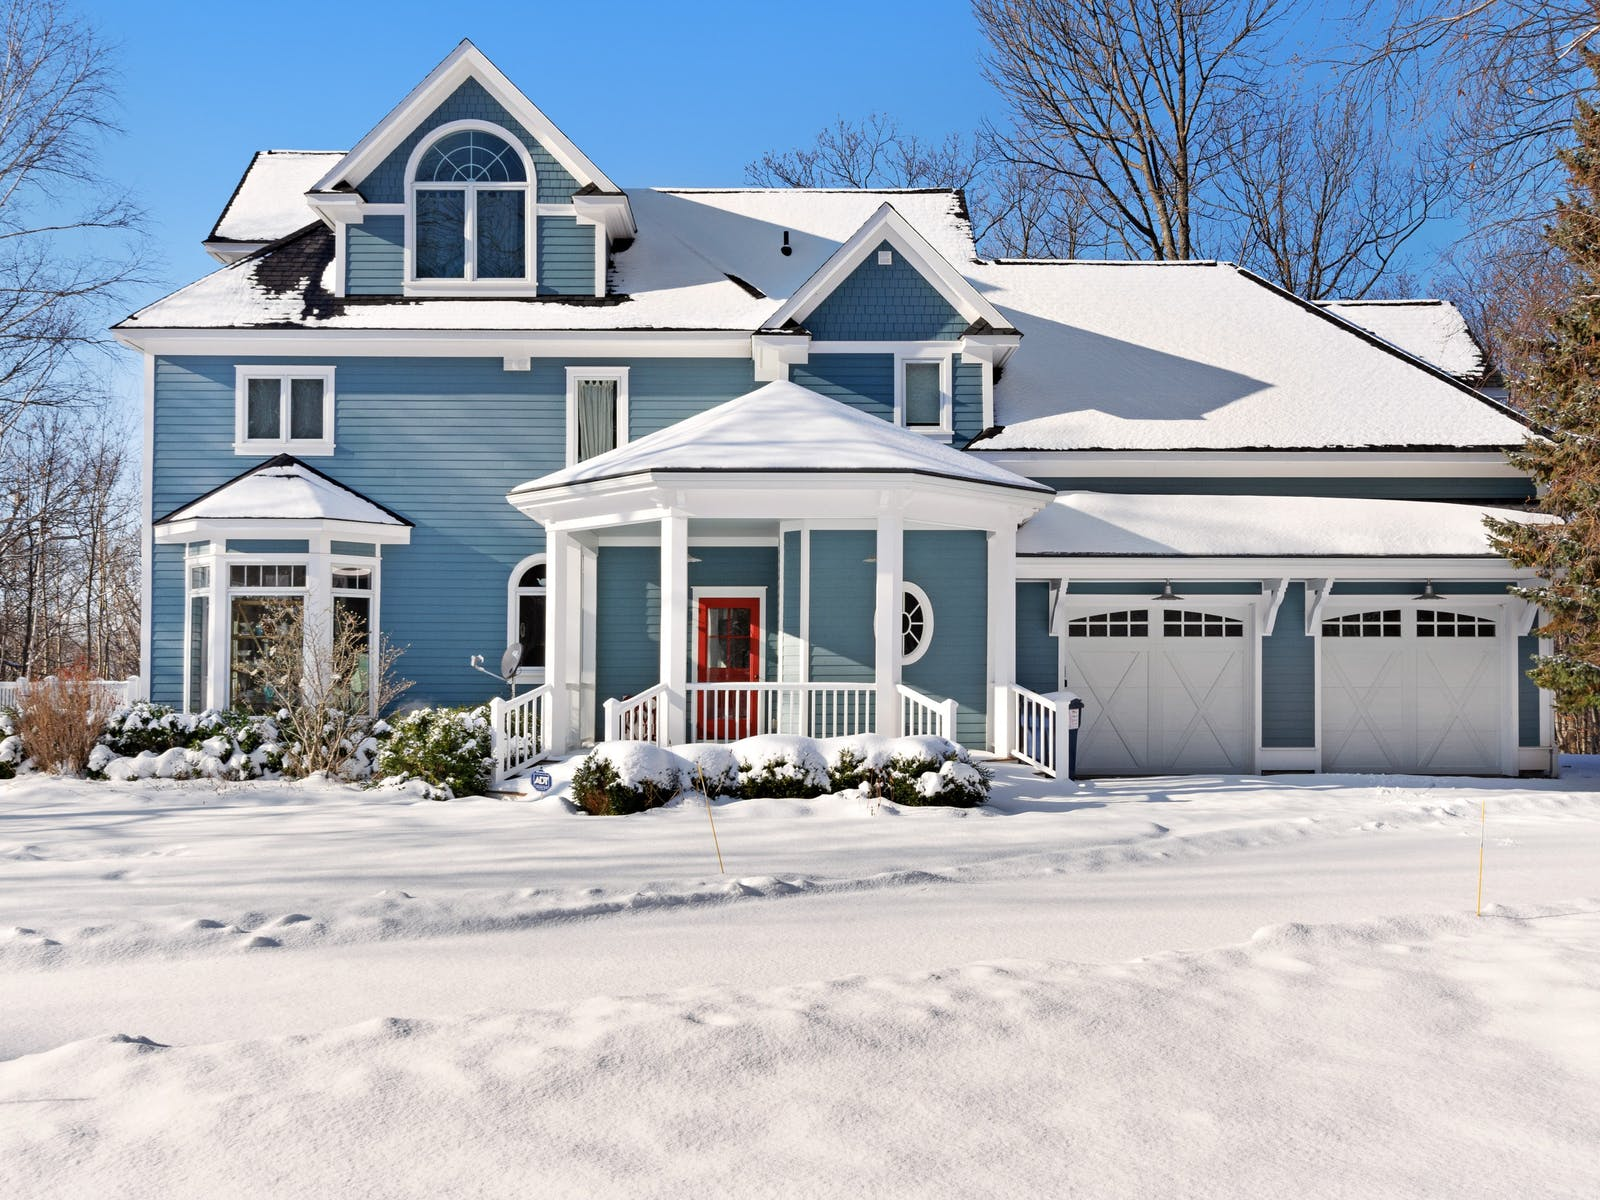 two-story home in harbor springs, mi covered in a fresh layer of snow